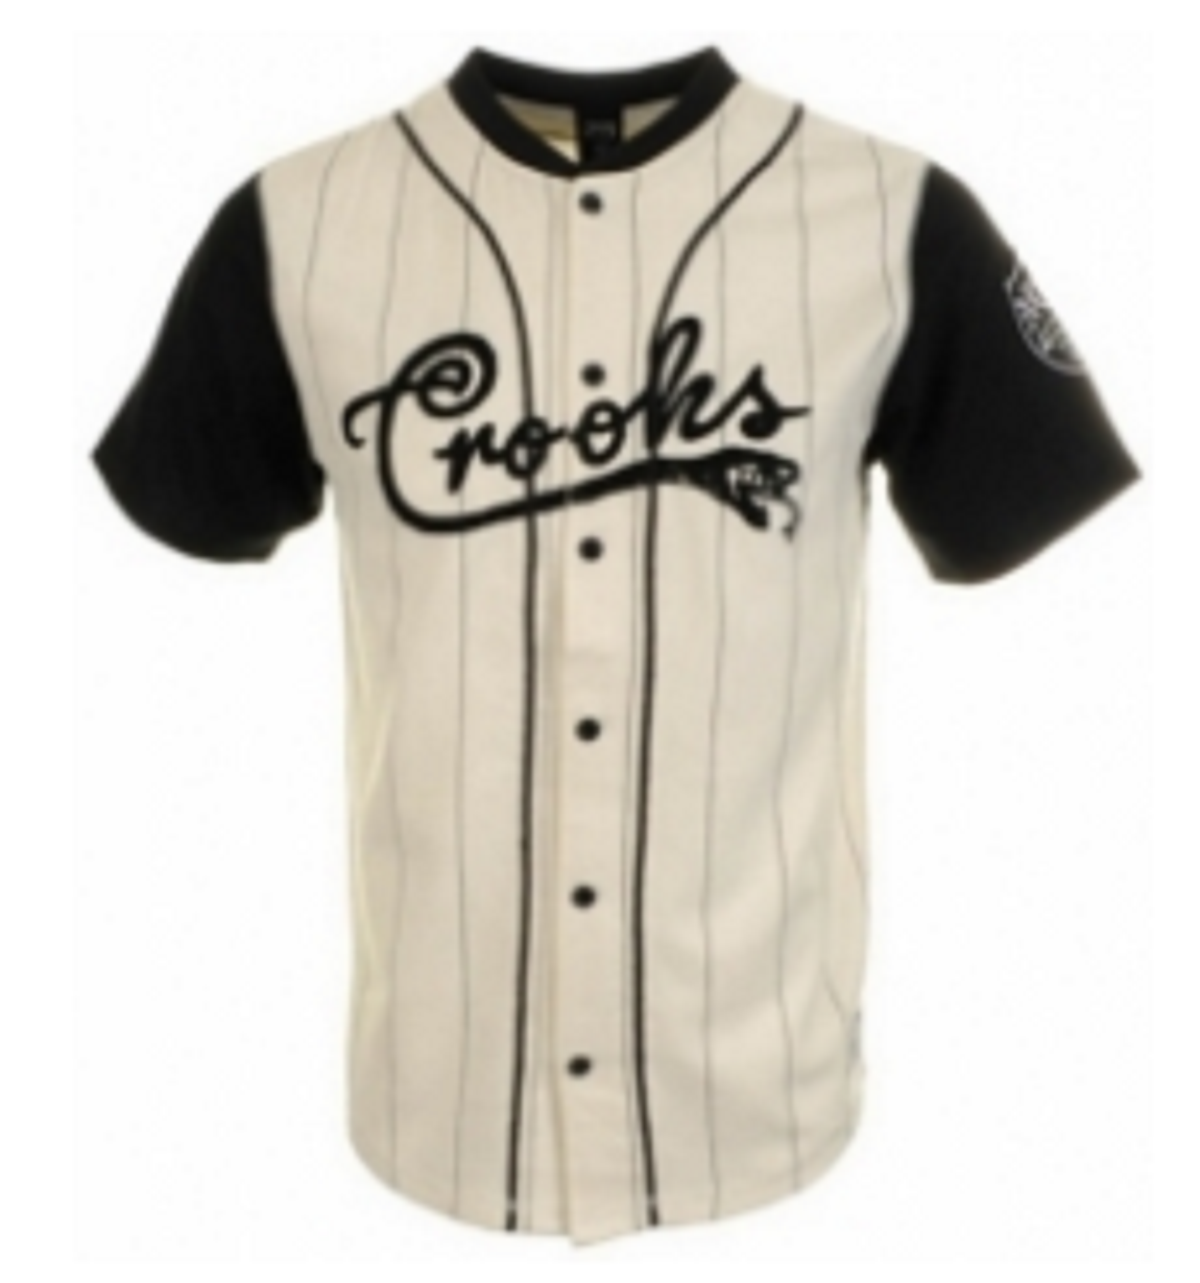 Baseball Uniforms White & Black Model No TSI­5503